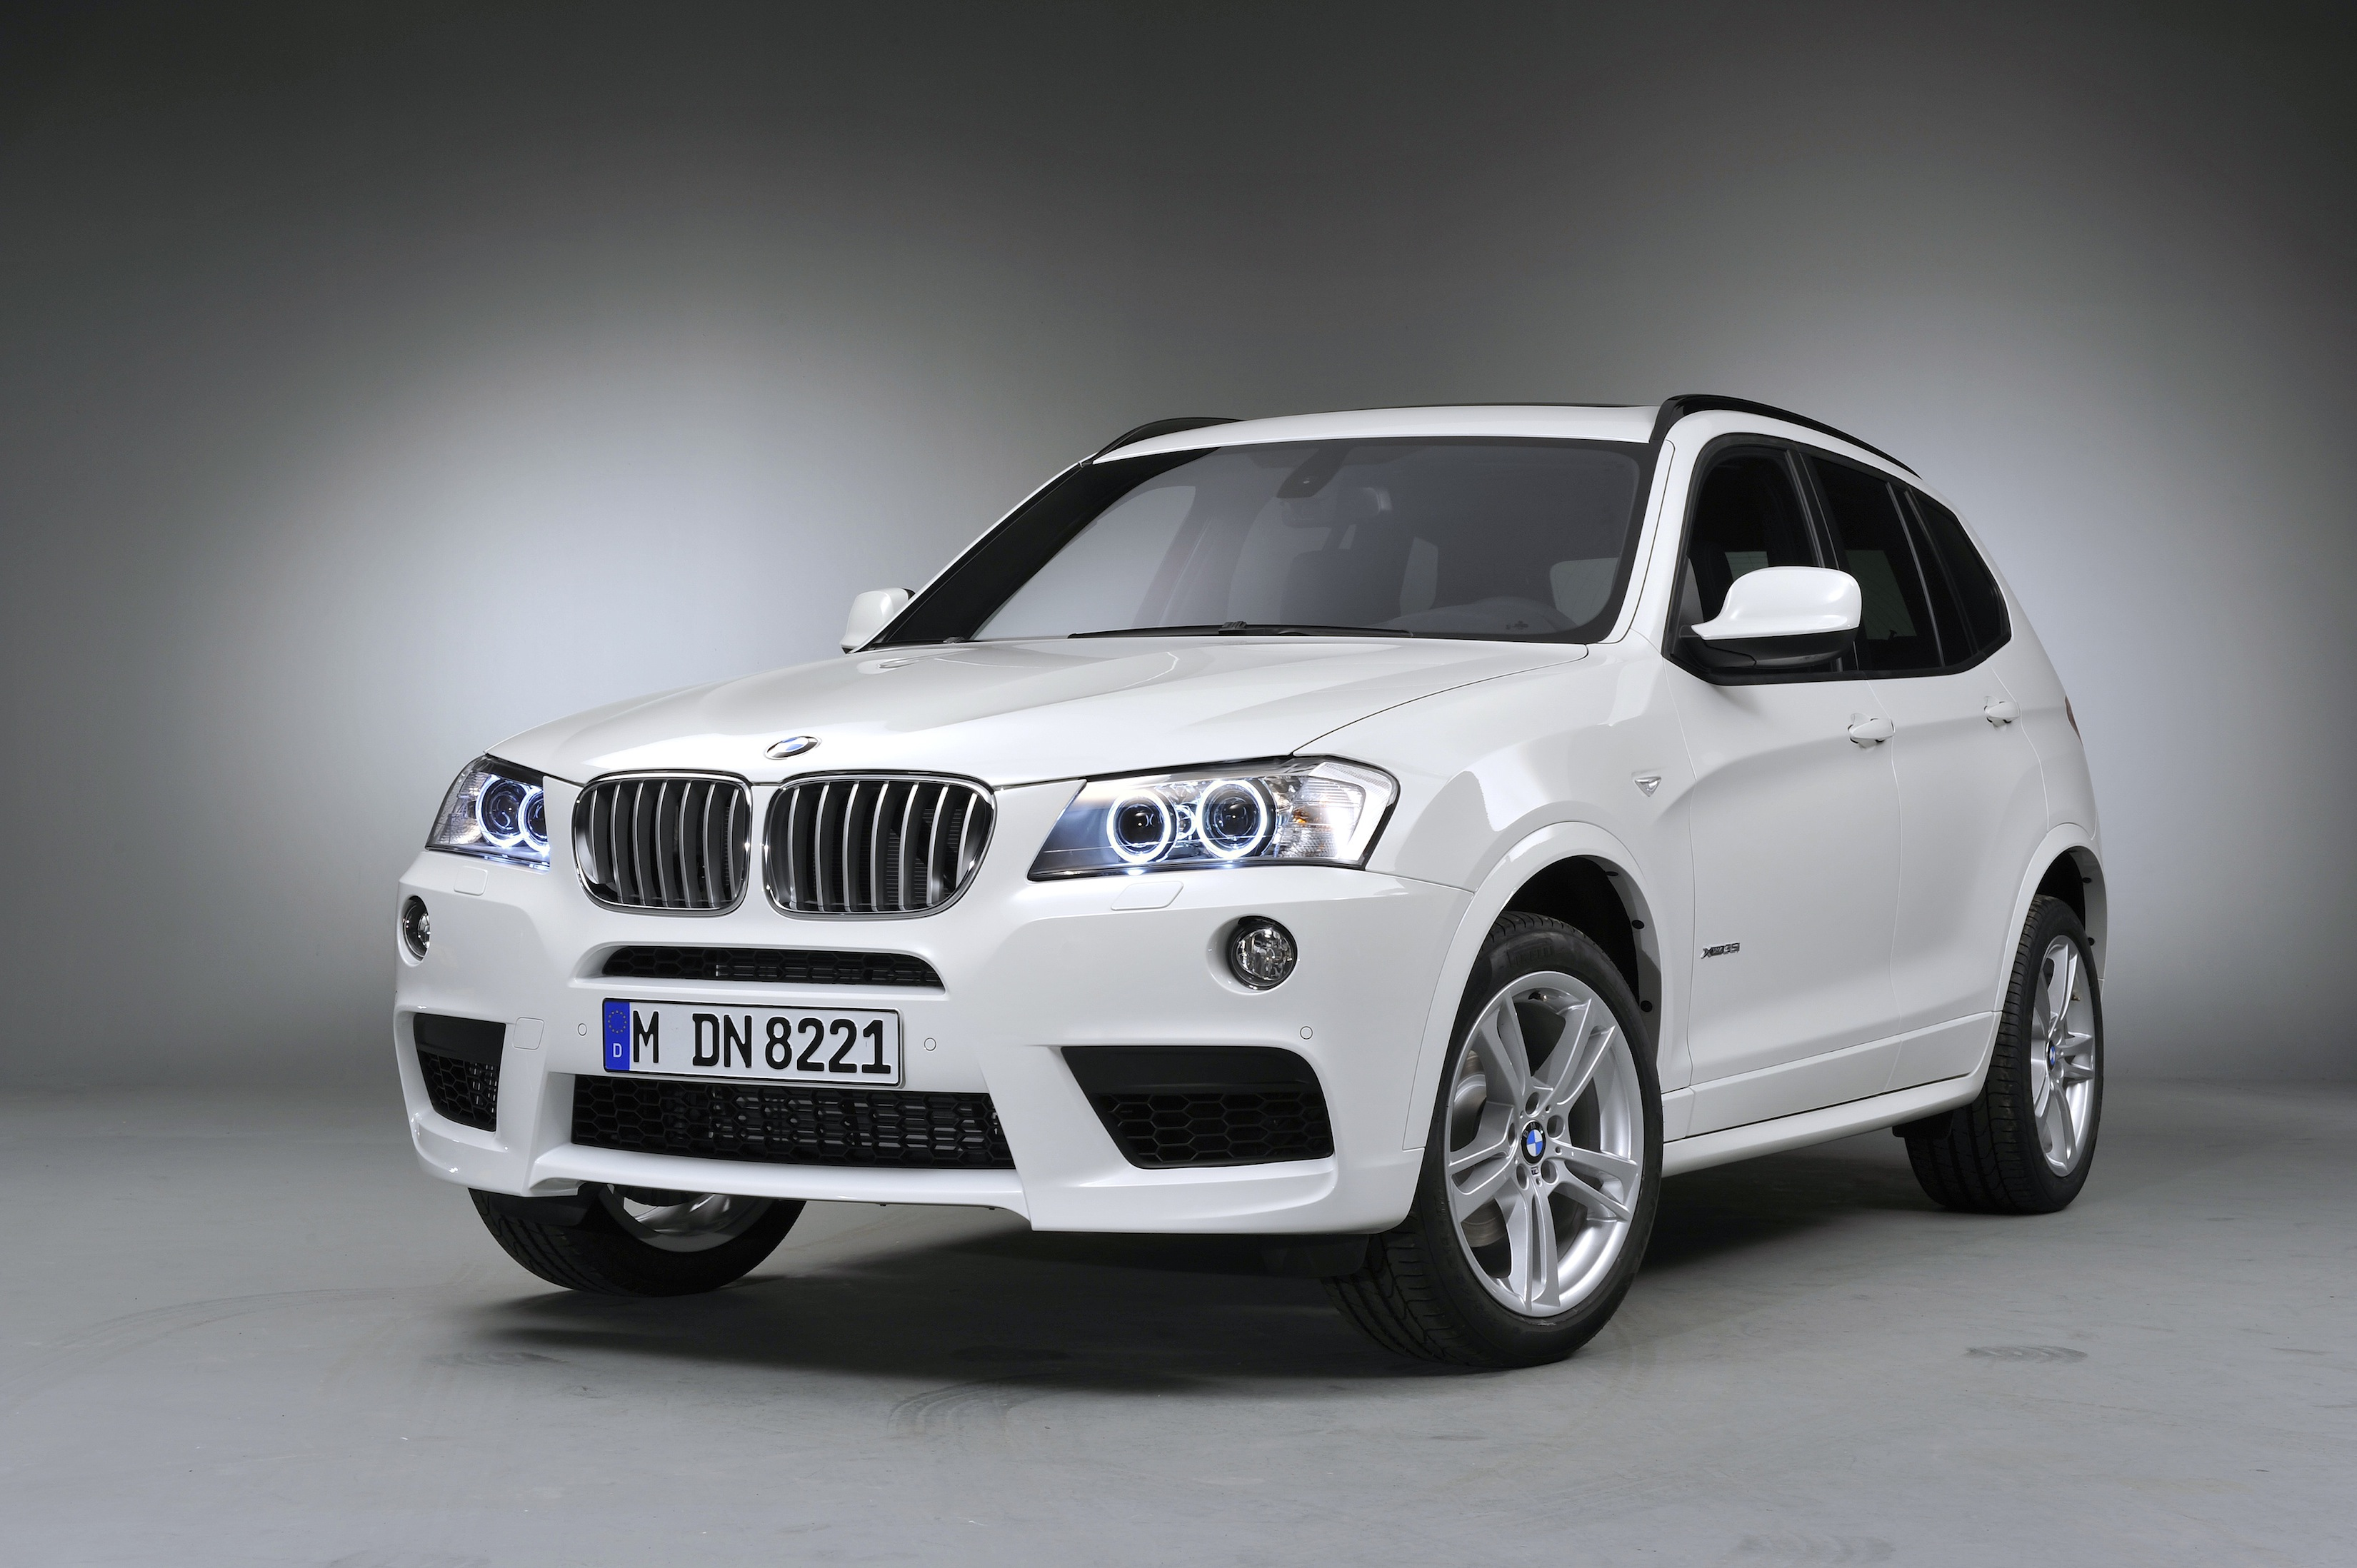 Essai du bmw x3 xdrive35i 2014 for 1 5 dimensioni del garage